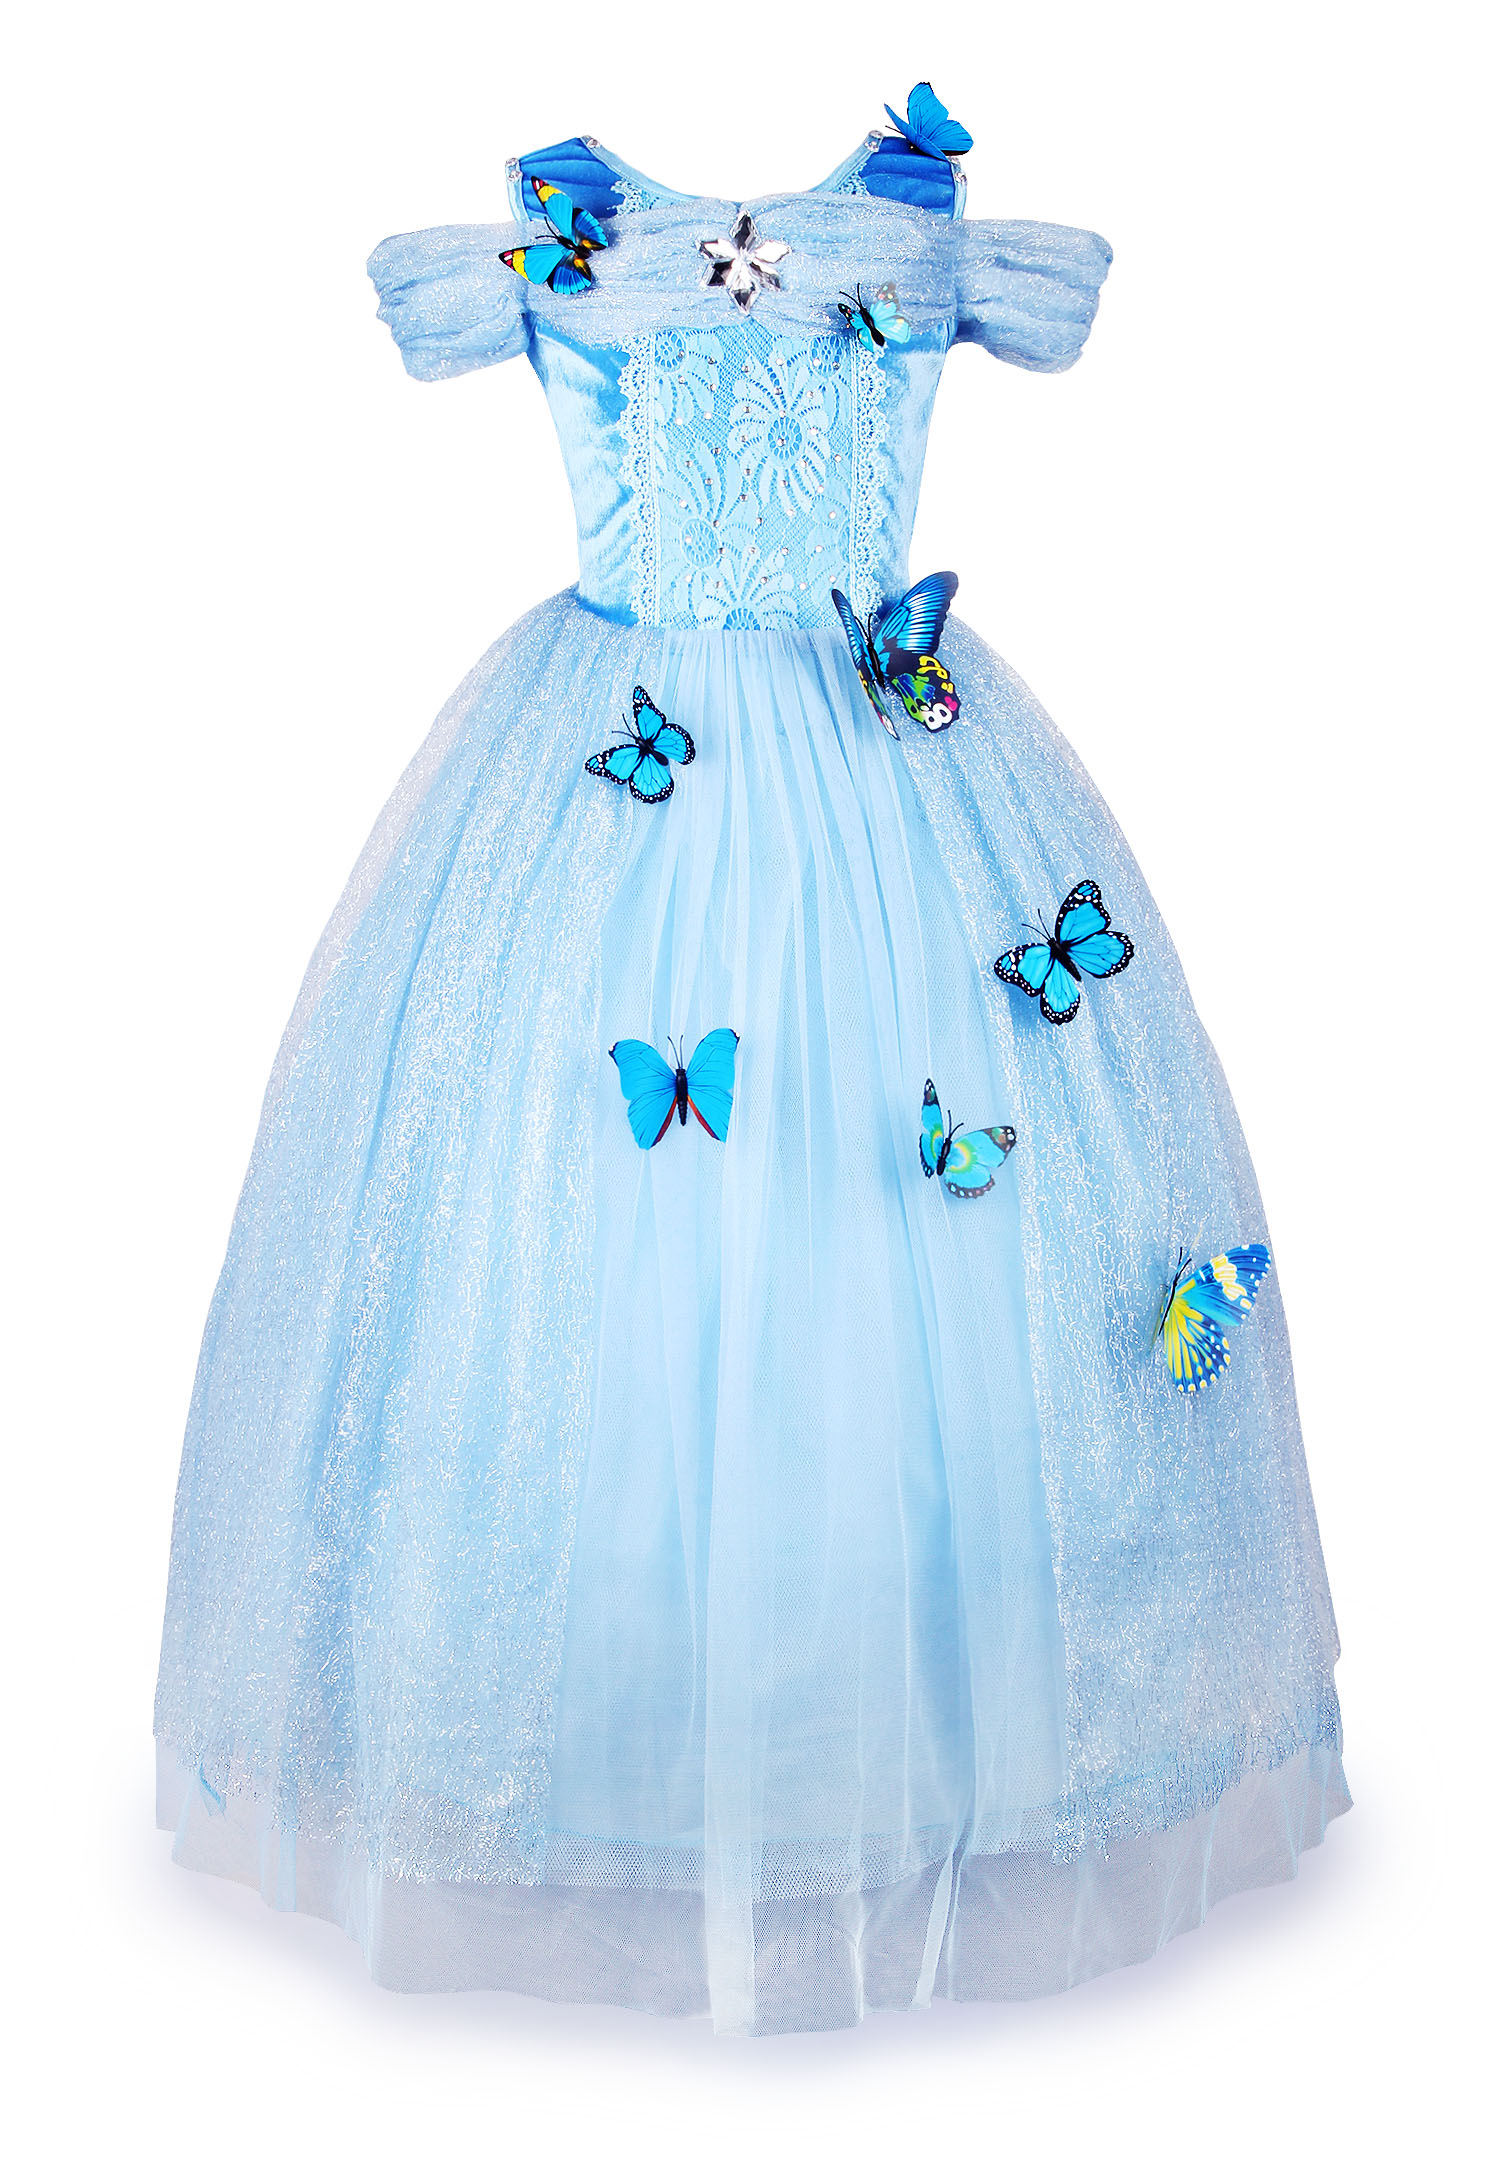 Kids Butterfly Girls Cinderella Princess Fancy Dress Cosplay Costume Party Out